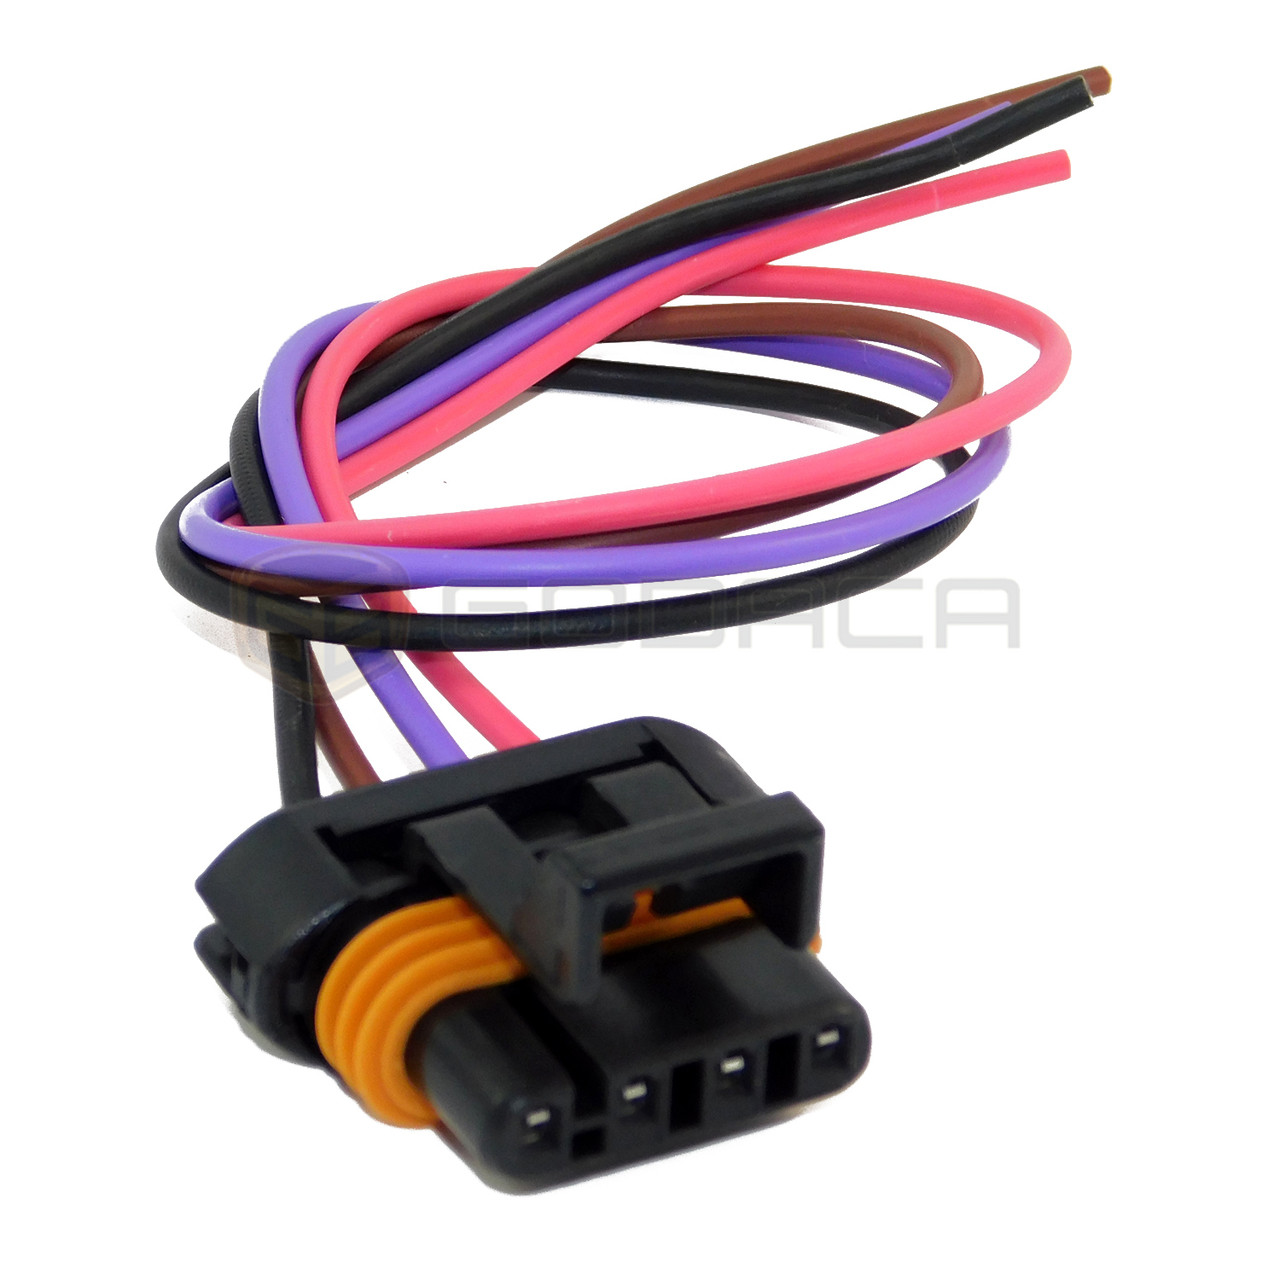 hight resolution of 1 x ls1 ls6 ignition coil wiring harness pigtail connector gm camaro corvette godaca llc